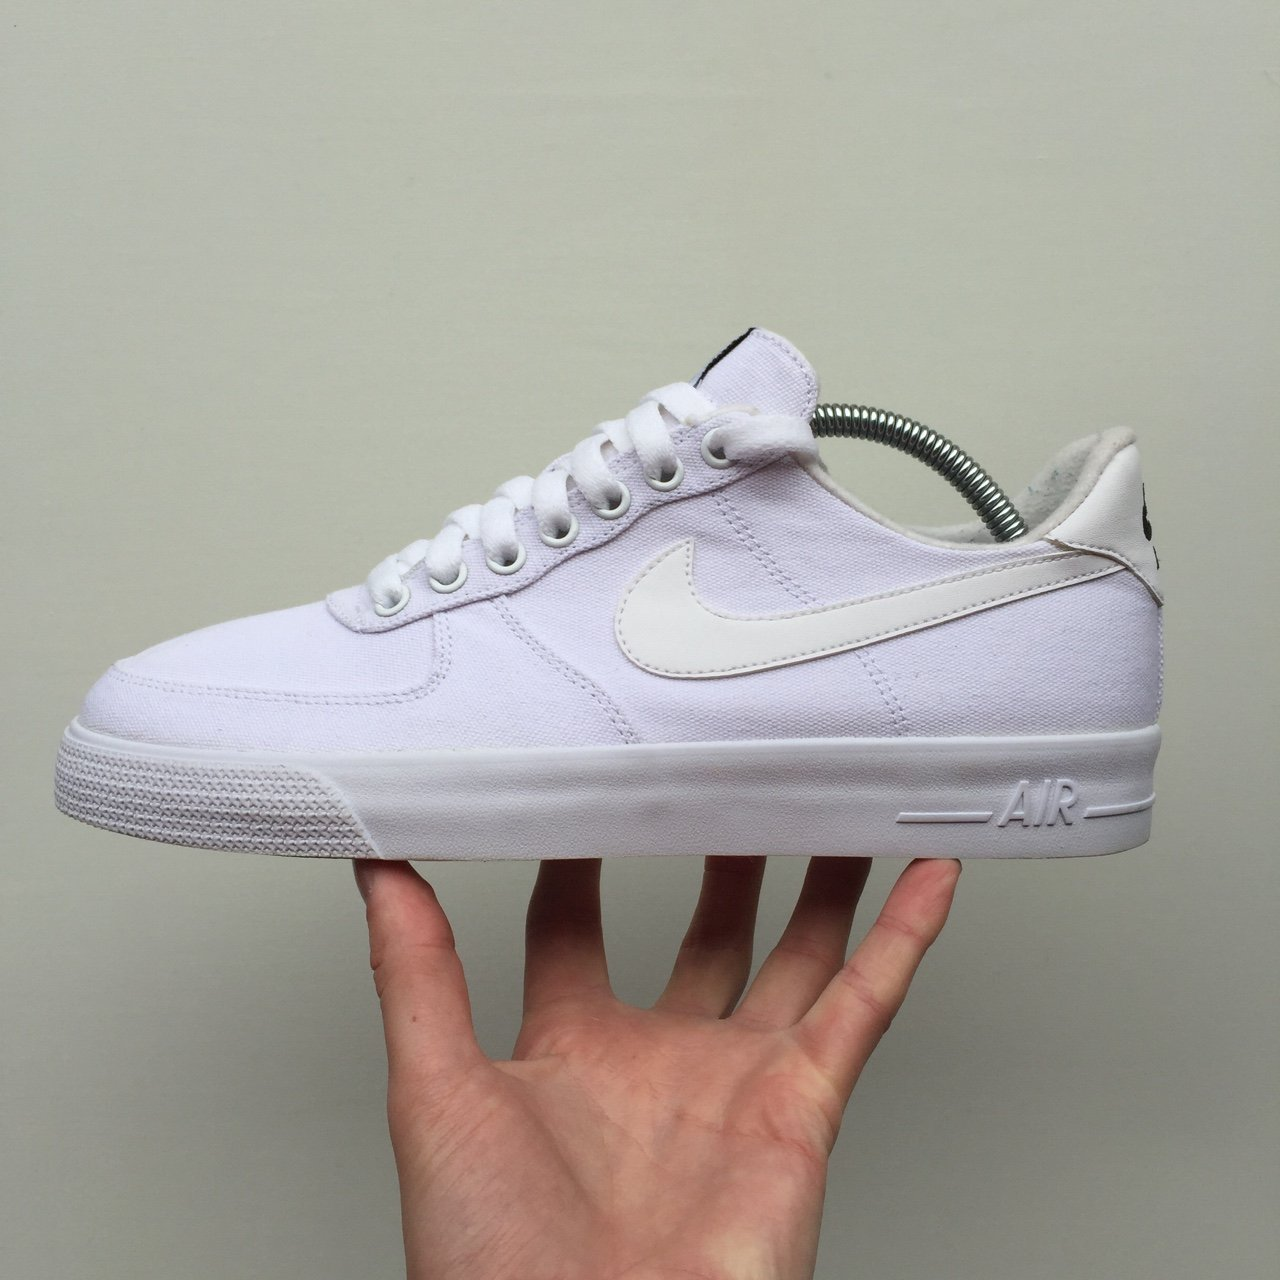 Nike Air Force 1 Low White UK Size 7 Condition Depop